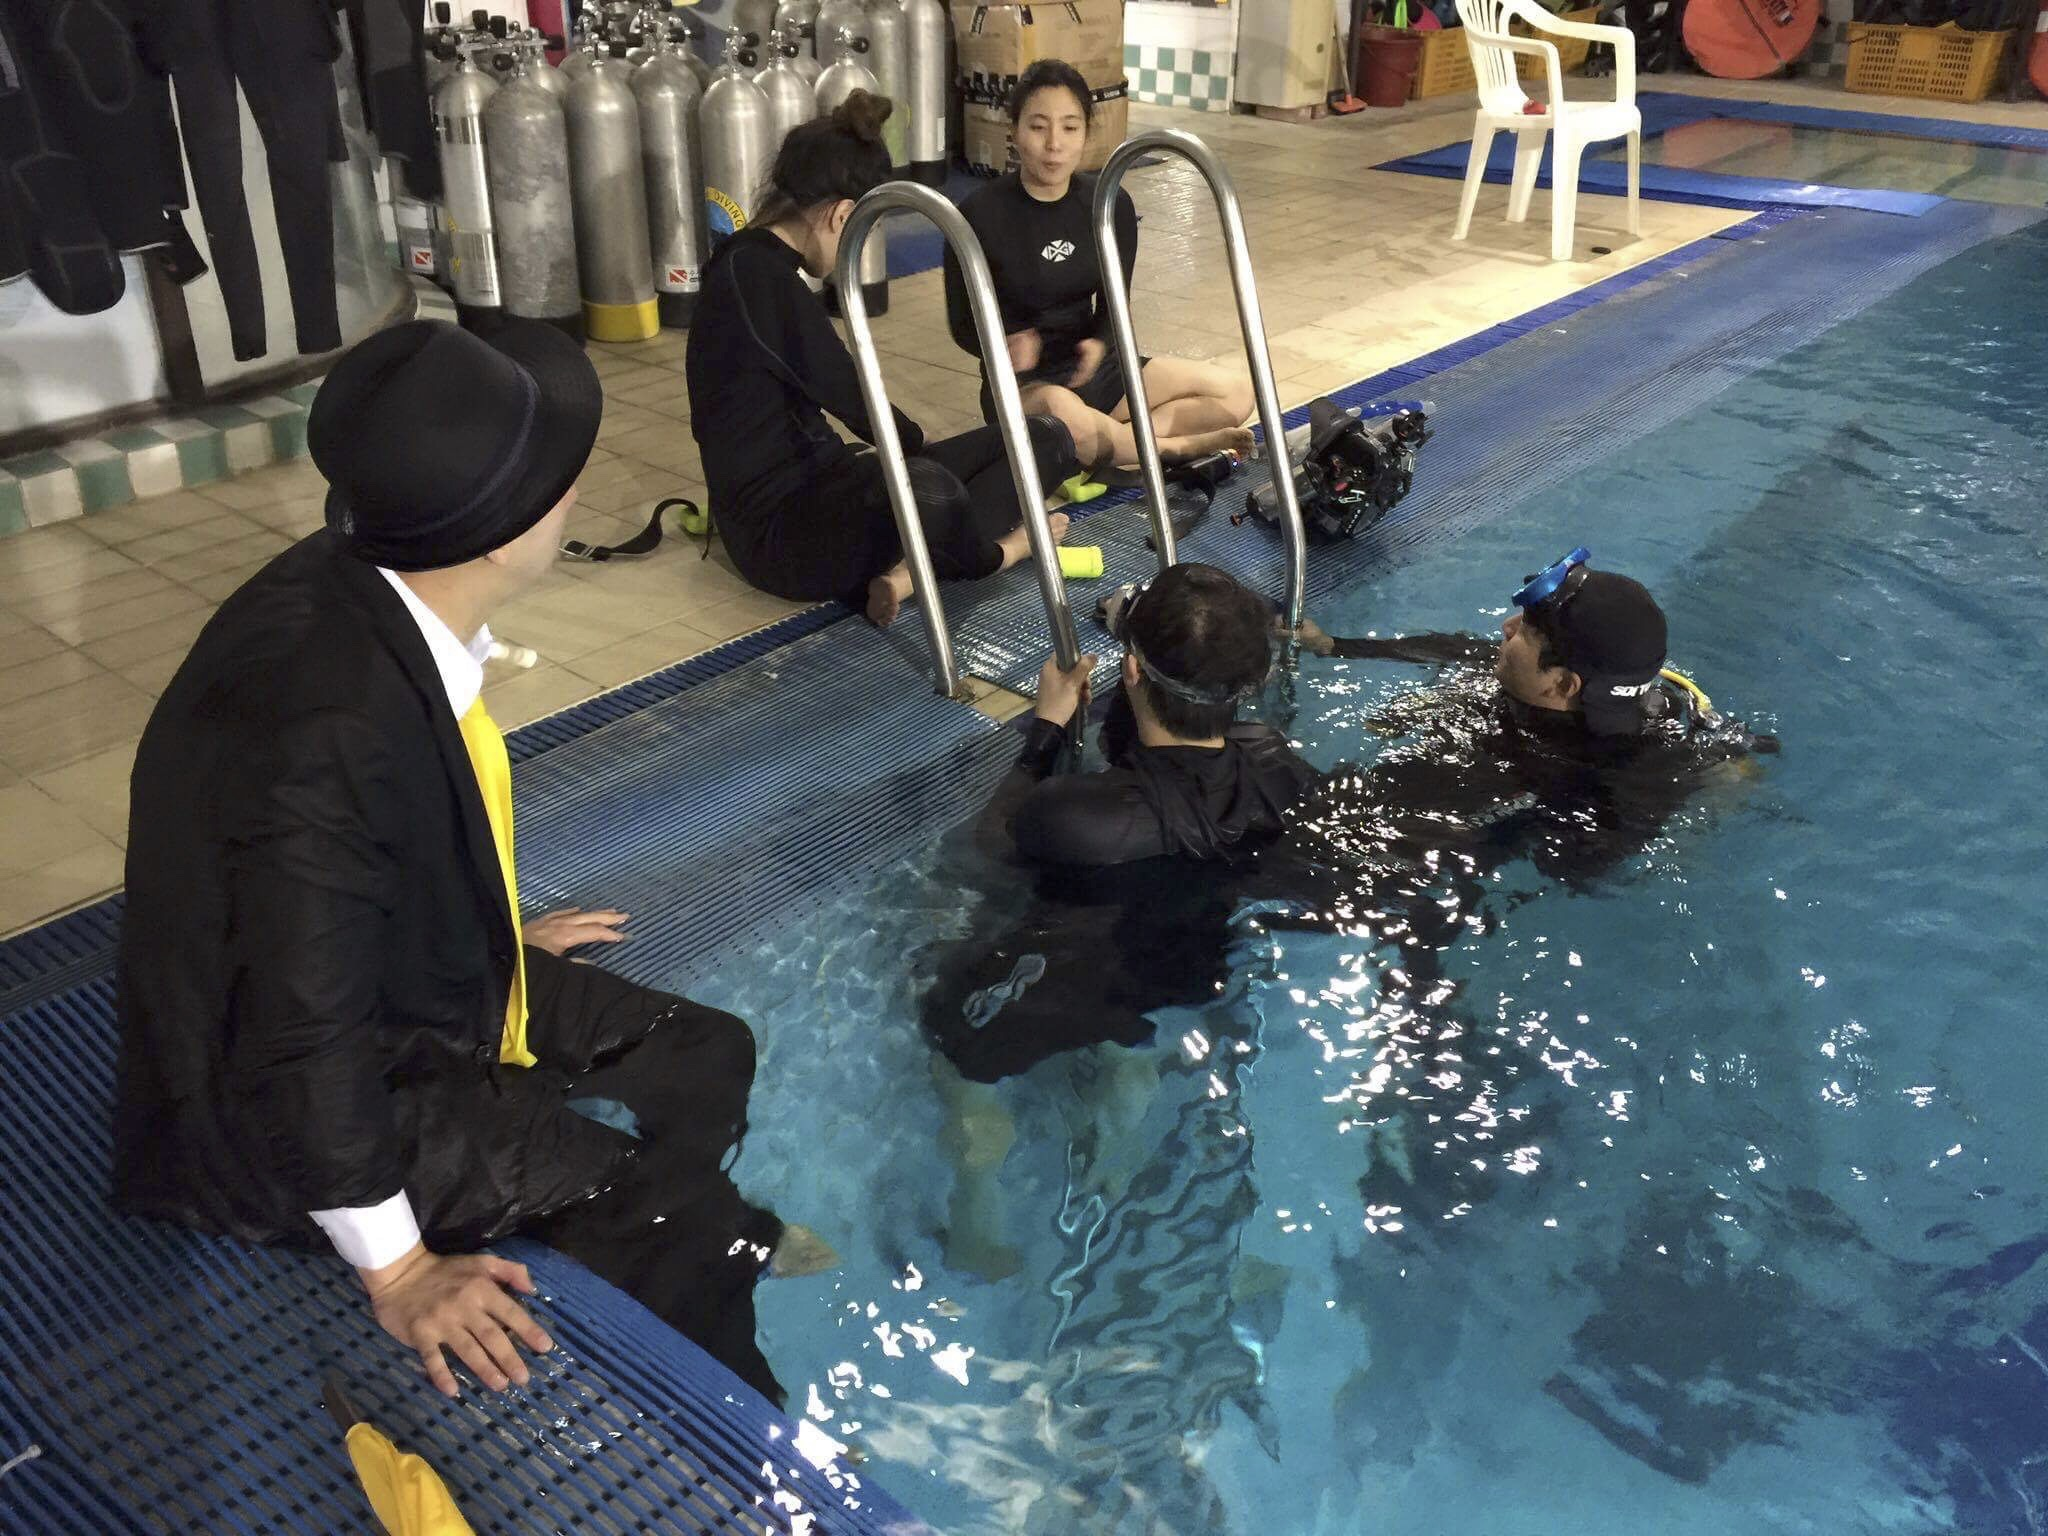 YZin and Hoon teach students how to model and do UW photography as well as snorkelling